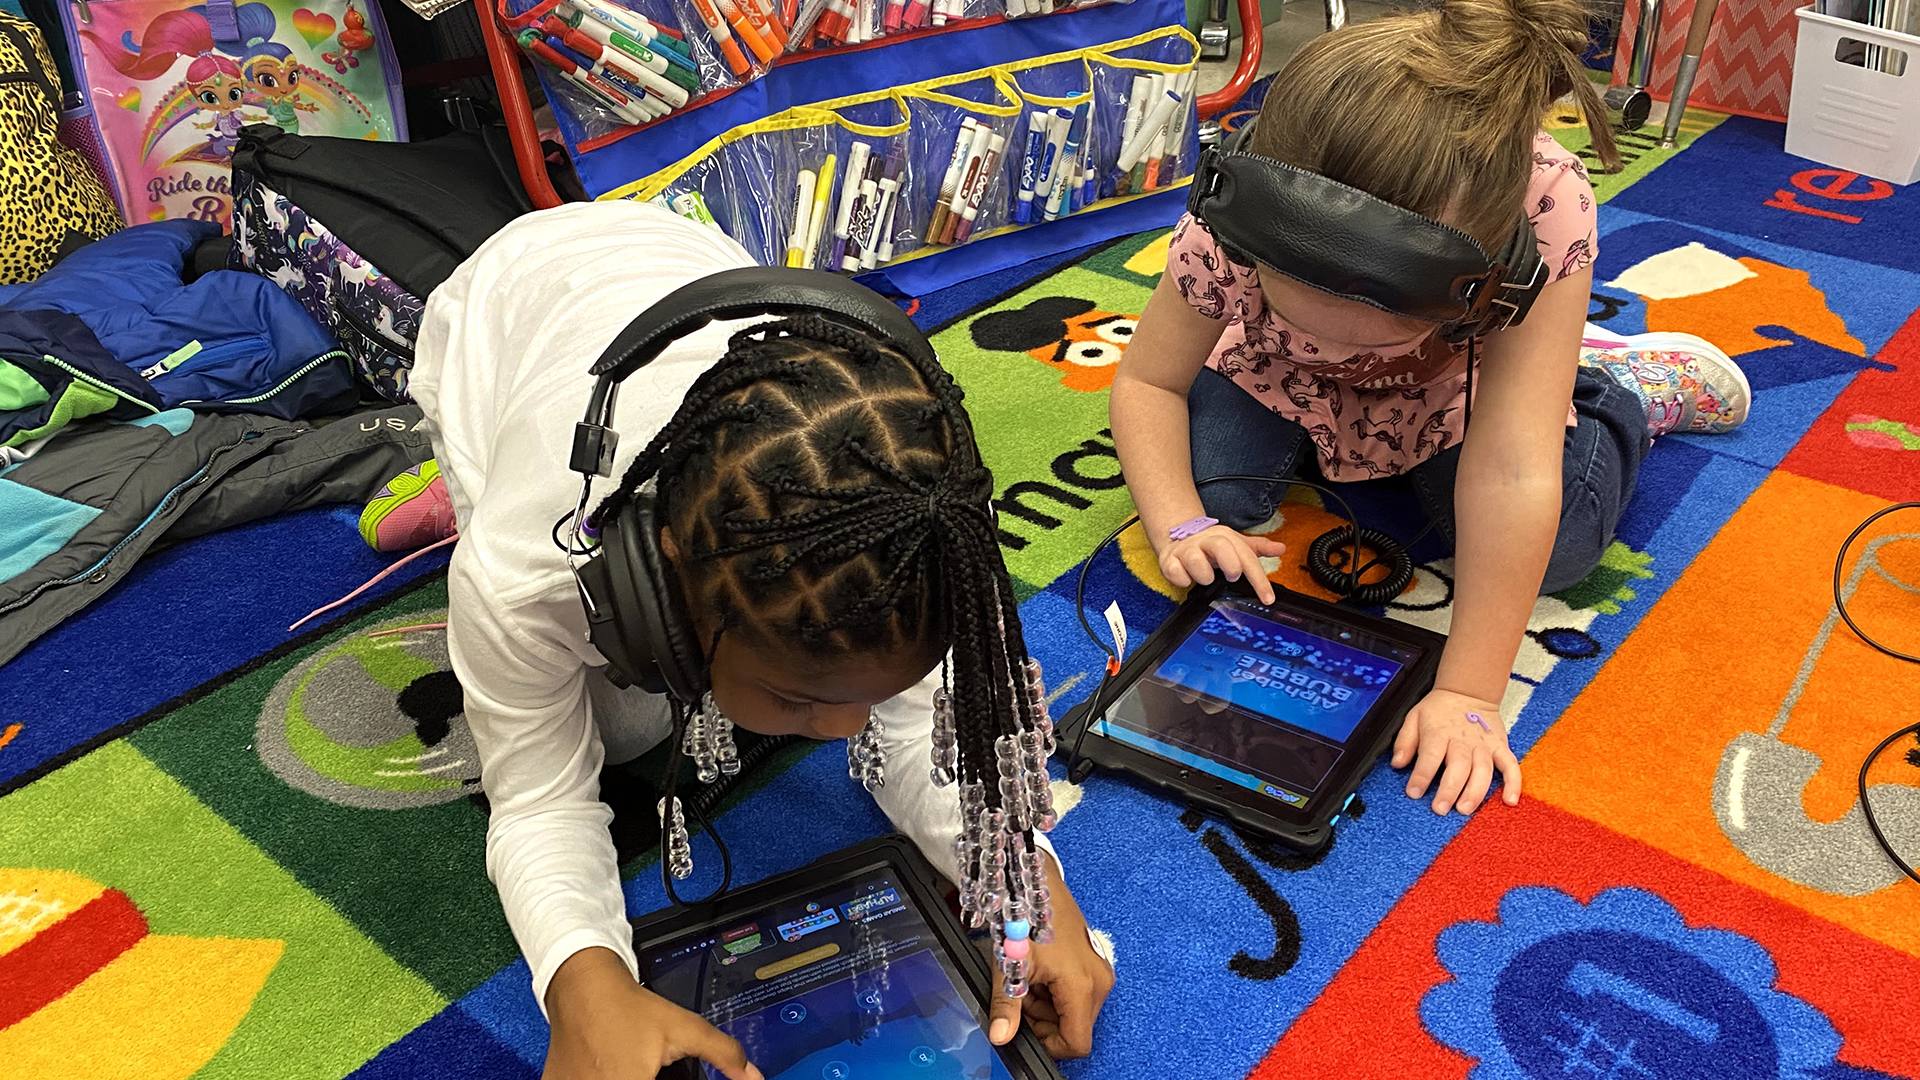 Two students on floor looking at a tablet device with headsets on.